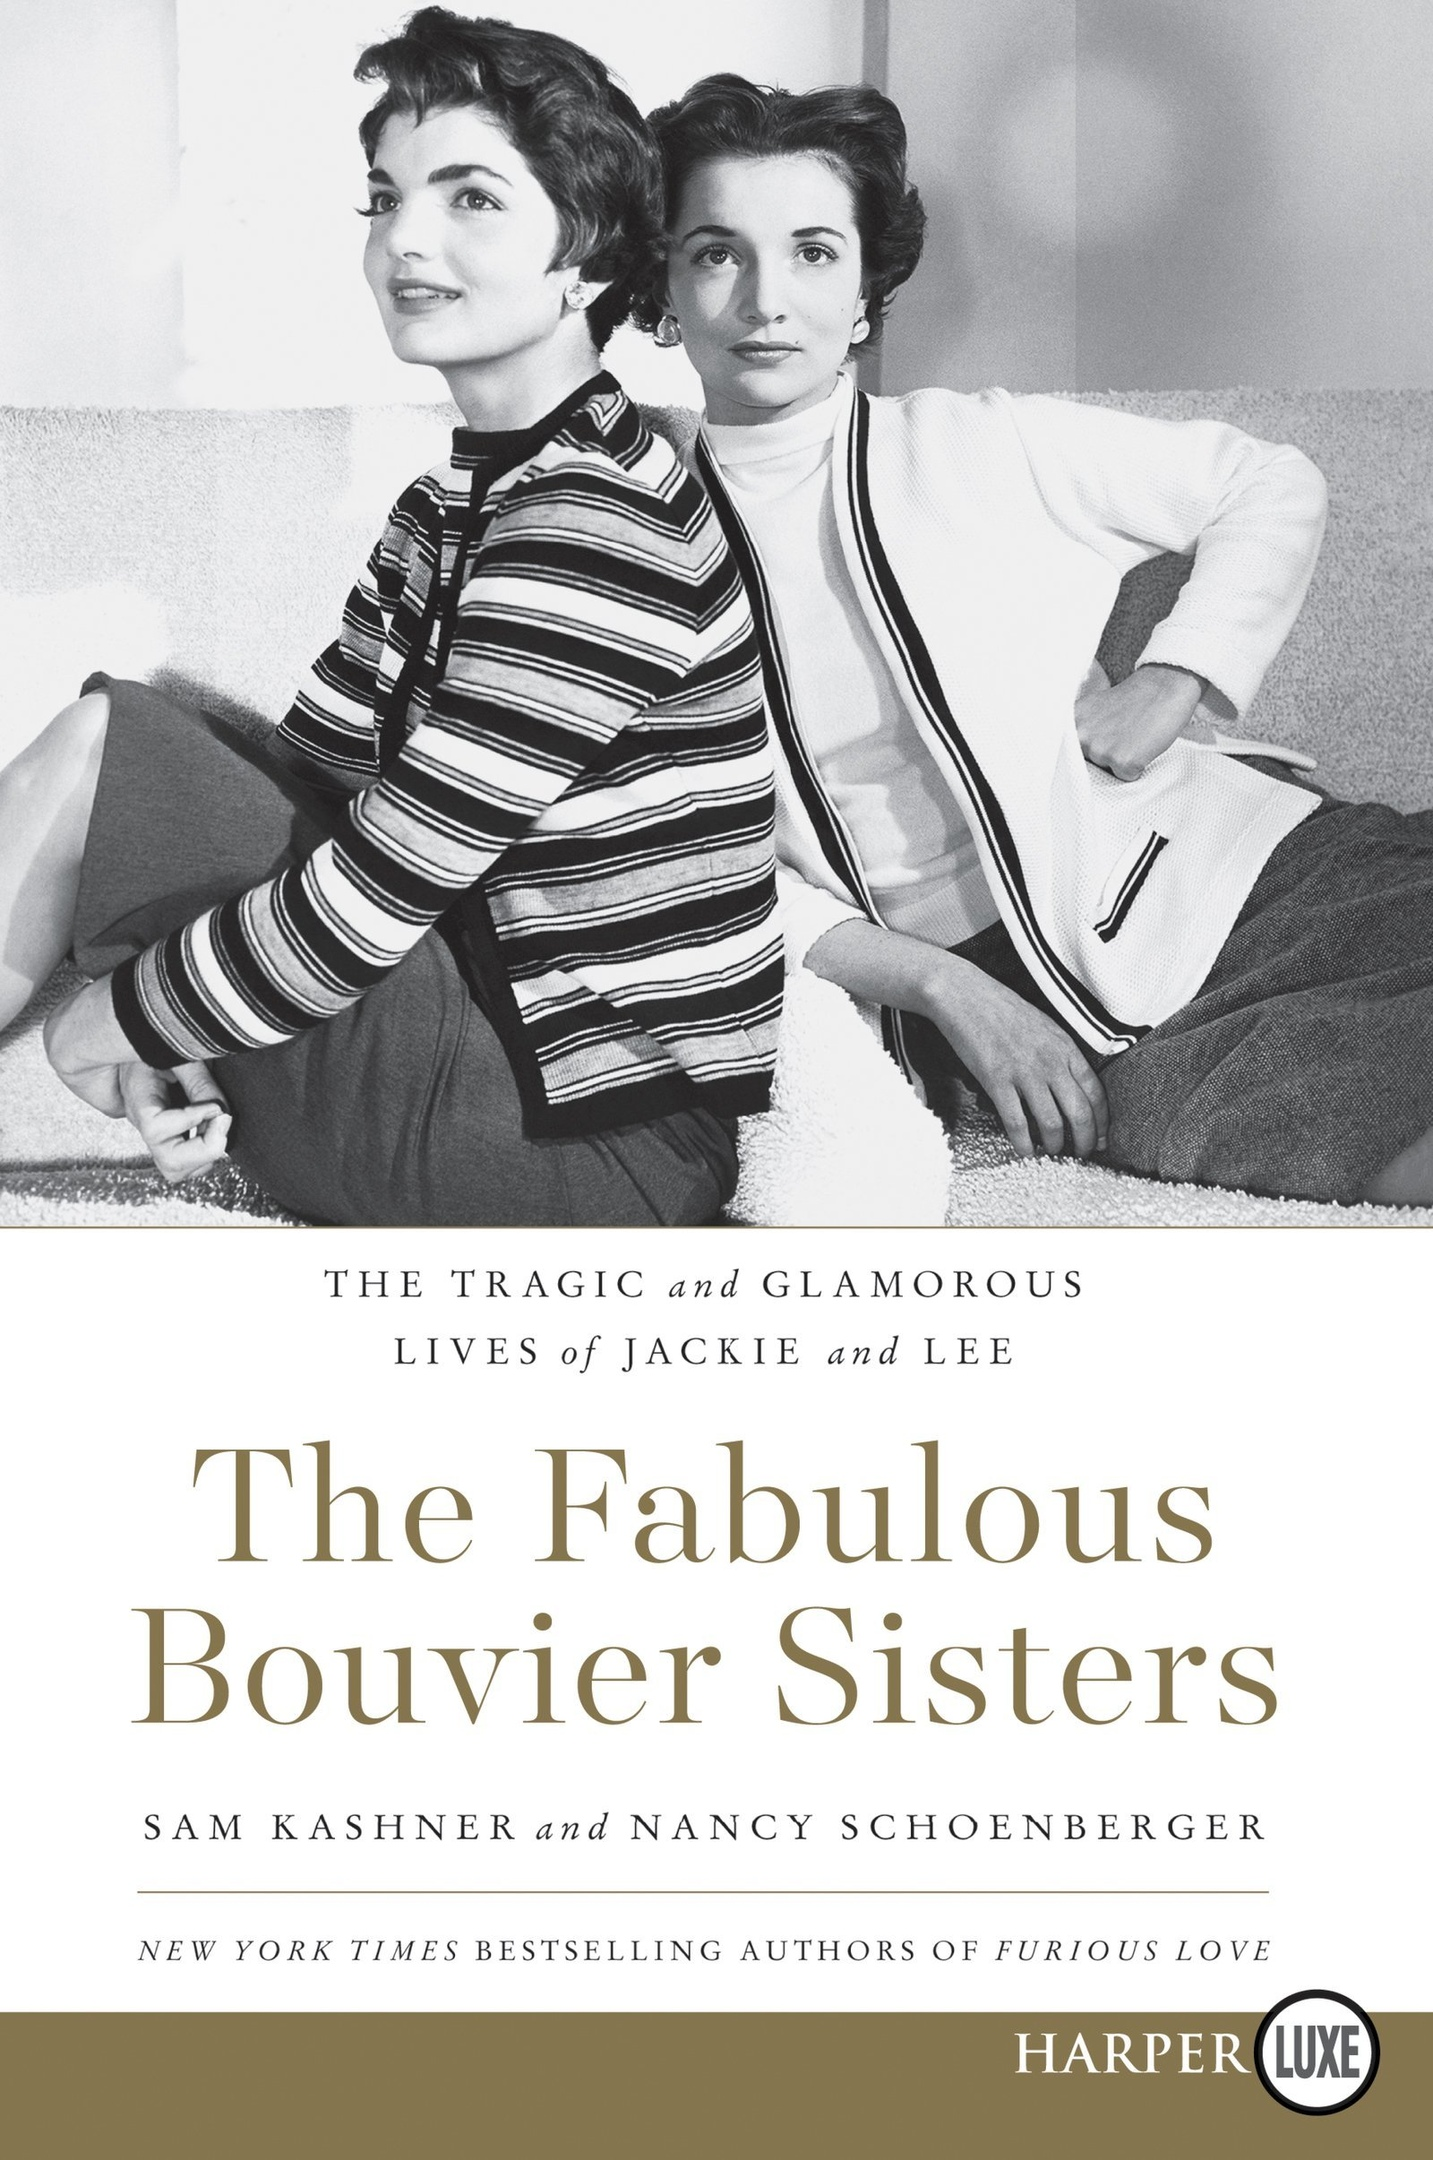 Sam Kashner, Nancy Schoenberger – The Fabulous Bouvier Sisters